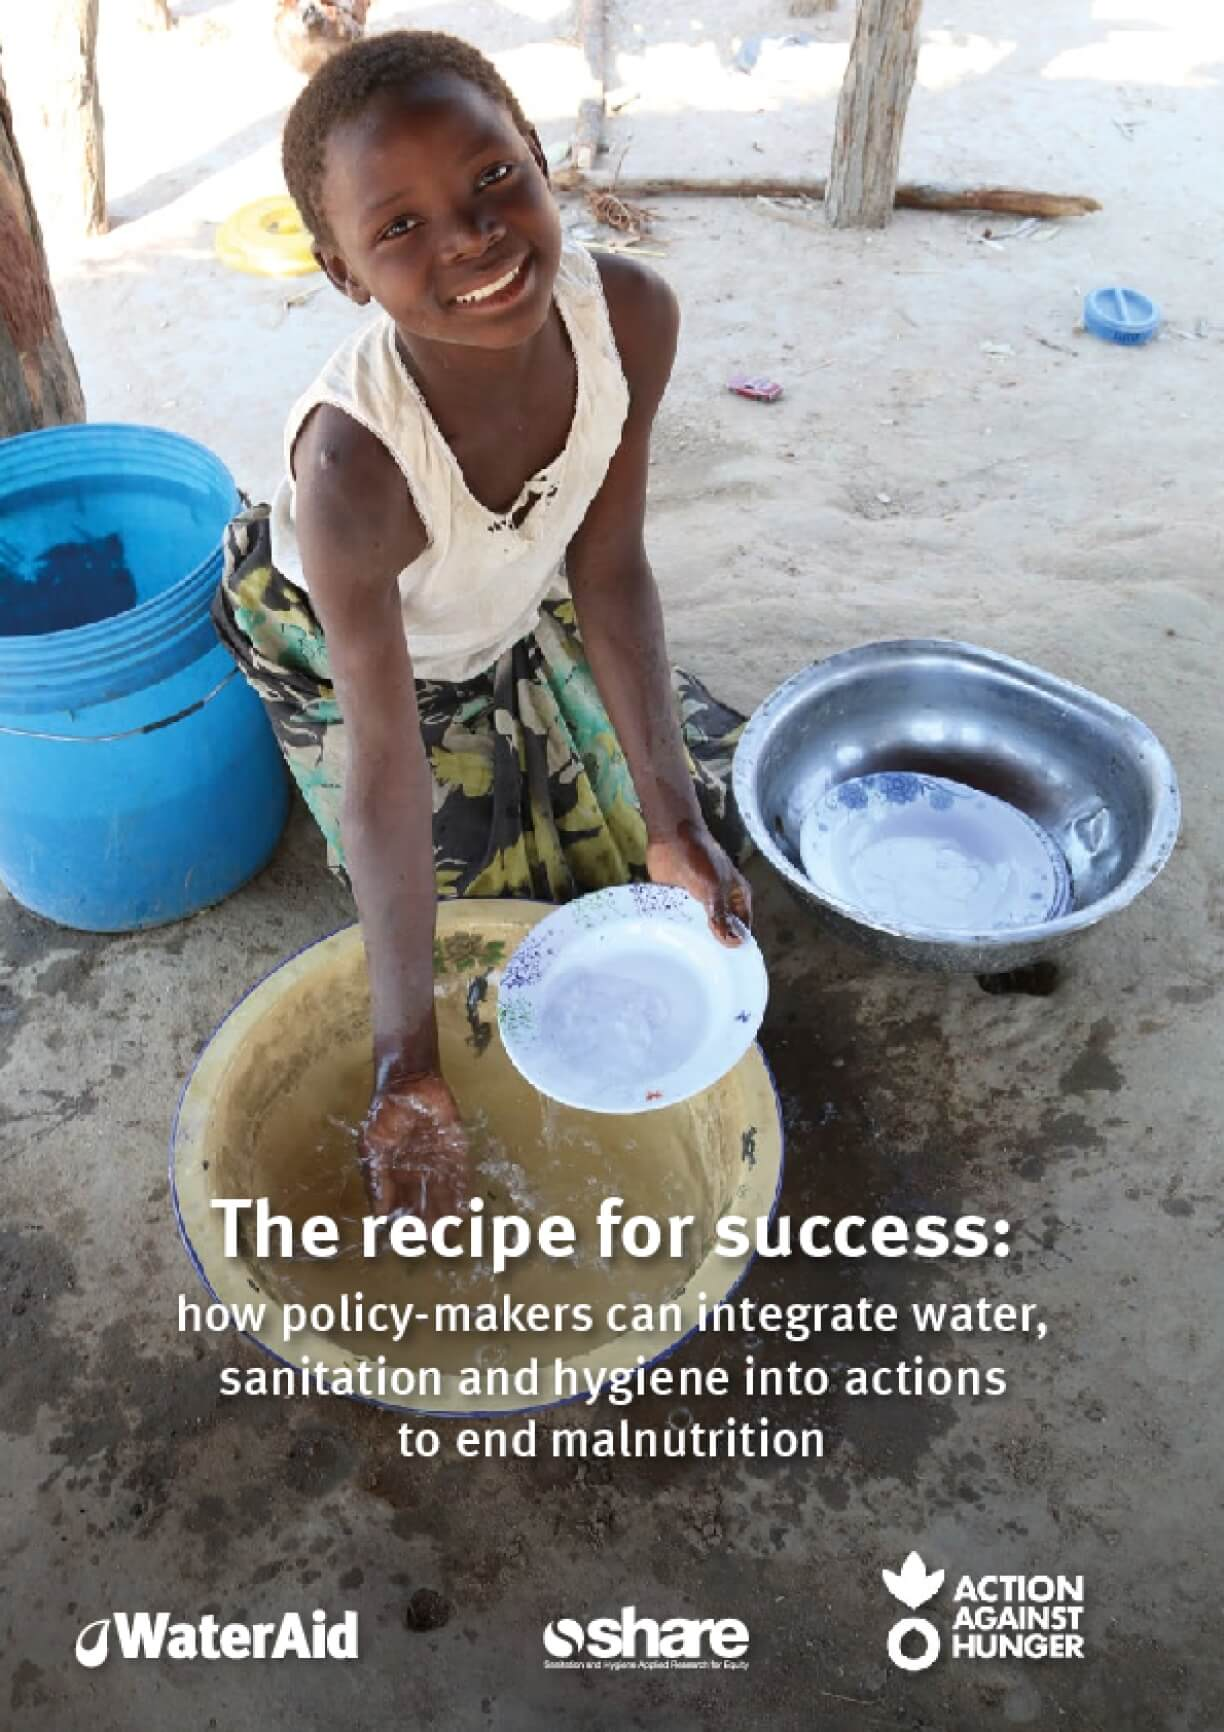 The Recipe for Success: How Policy-makers Can Integrate Water, Sanitation and Hygiene Into Actions to End Malnutrition